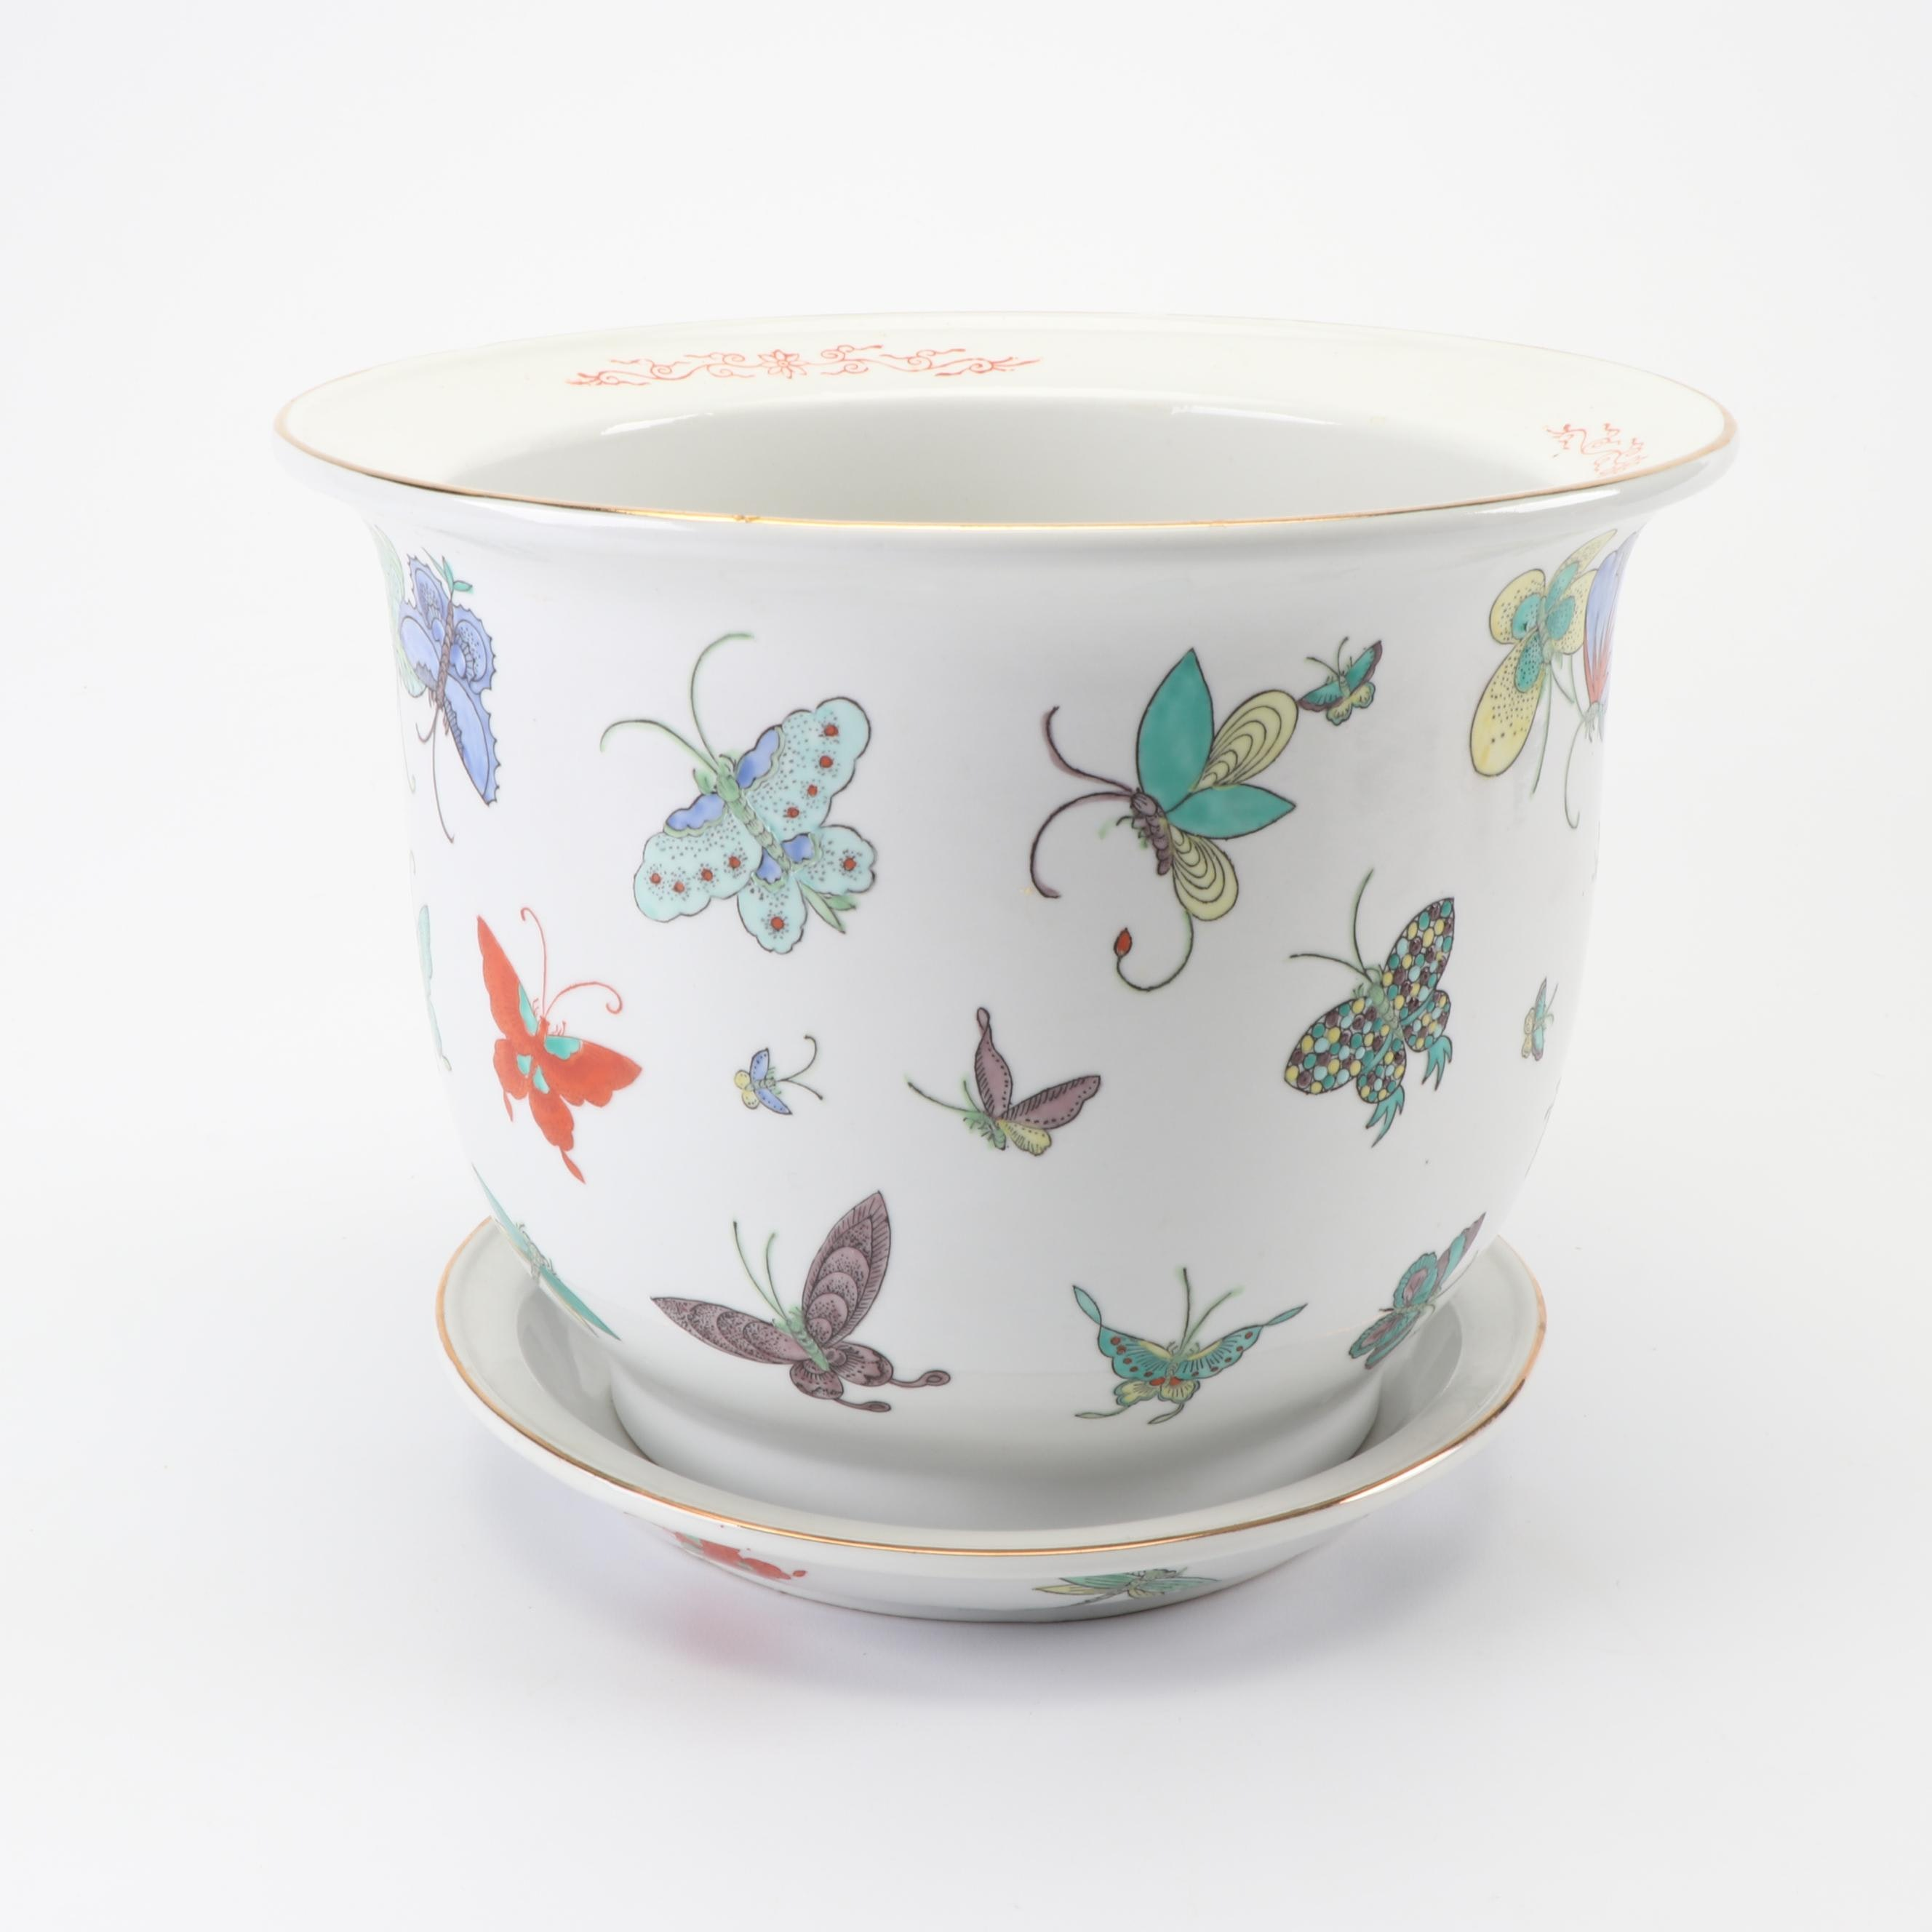 Hand-Painted Chinese Ceramic Planter with Butterfly Motif